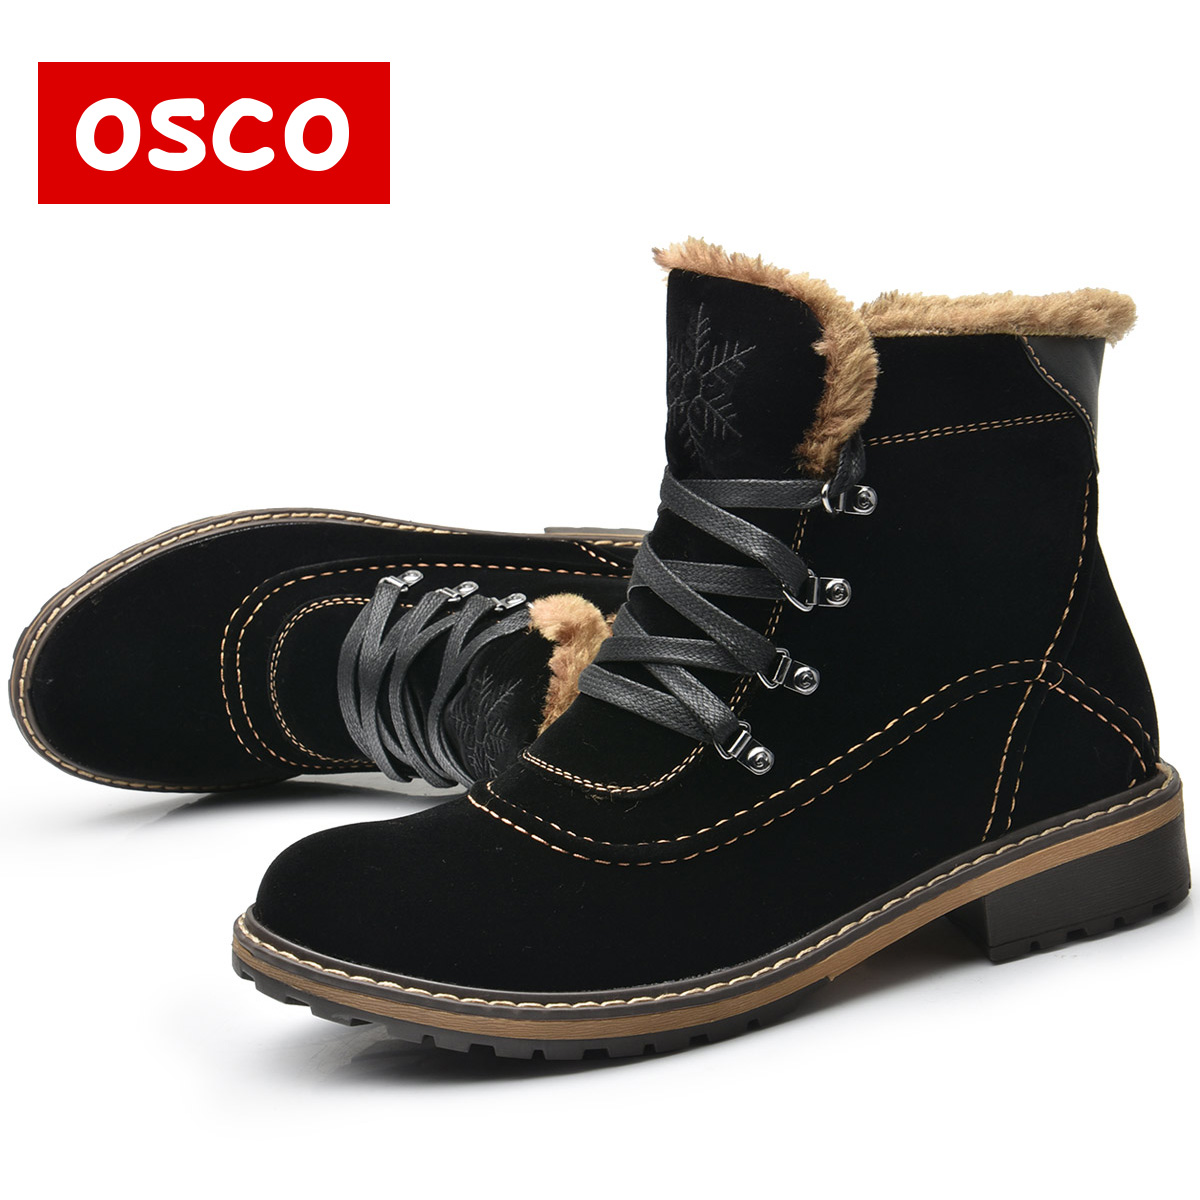 OSCO Brand Women Boots Female Winter Shoes Woman Warm Snow Boots Fashion Suede Fur Ankle Boots Black Brown Size 35-40 #119F03  new fashion style snow boots winter fashion black brown warm fur women casual shoes on sale size 34 39